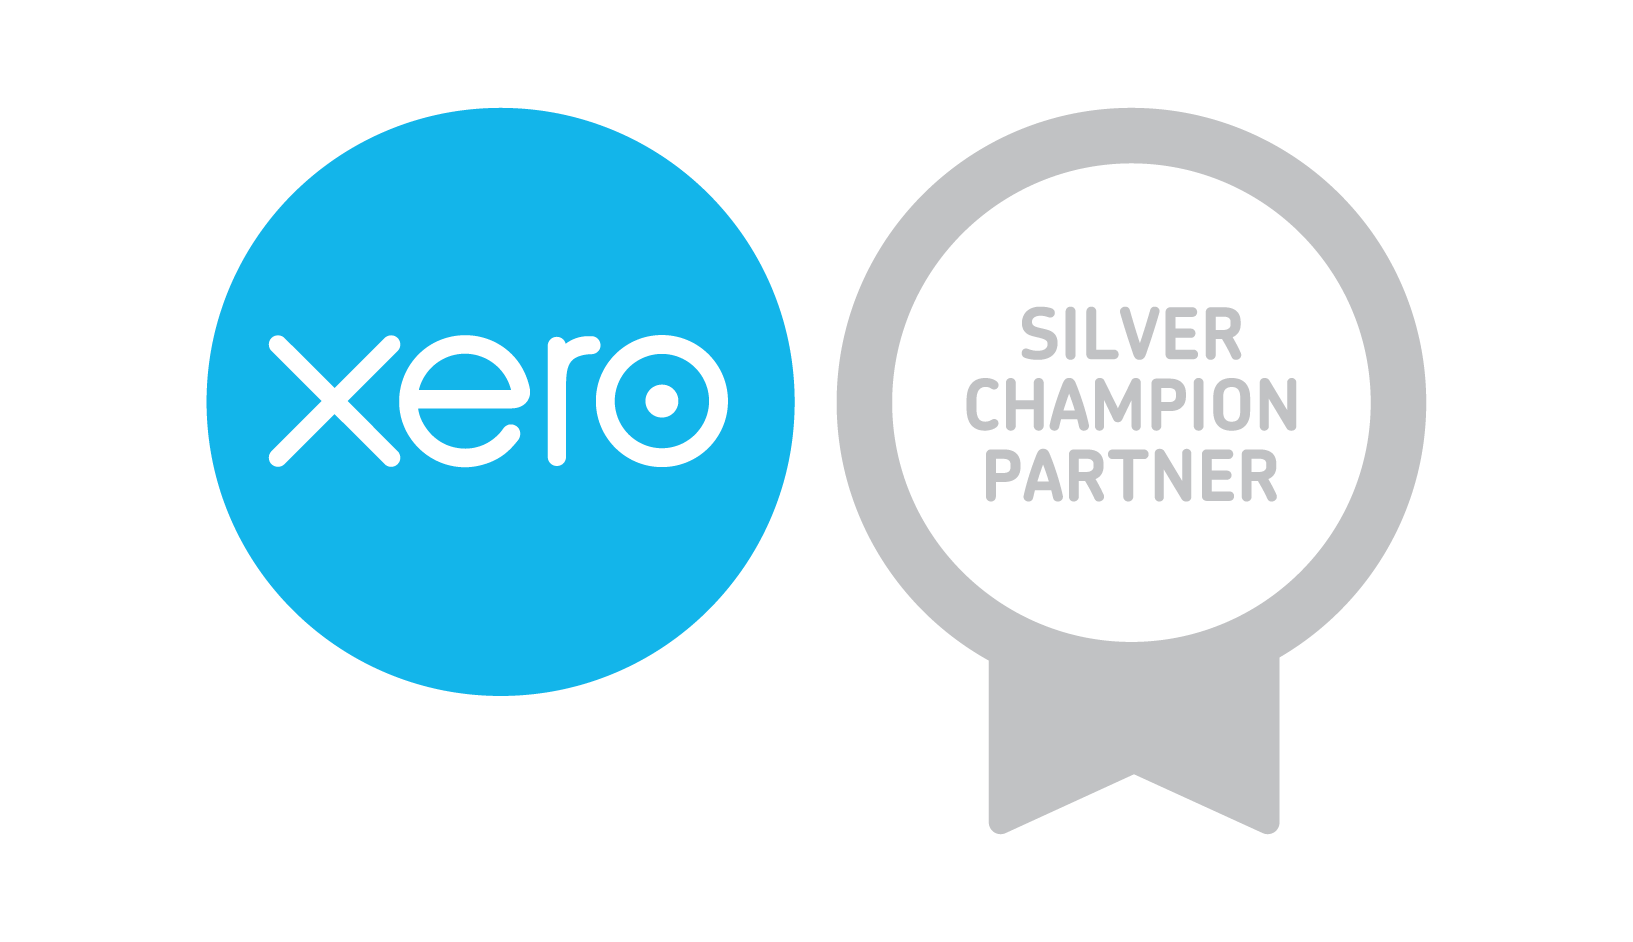 xero-champion-silver-partner-badge